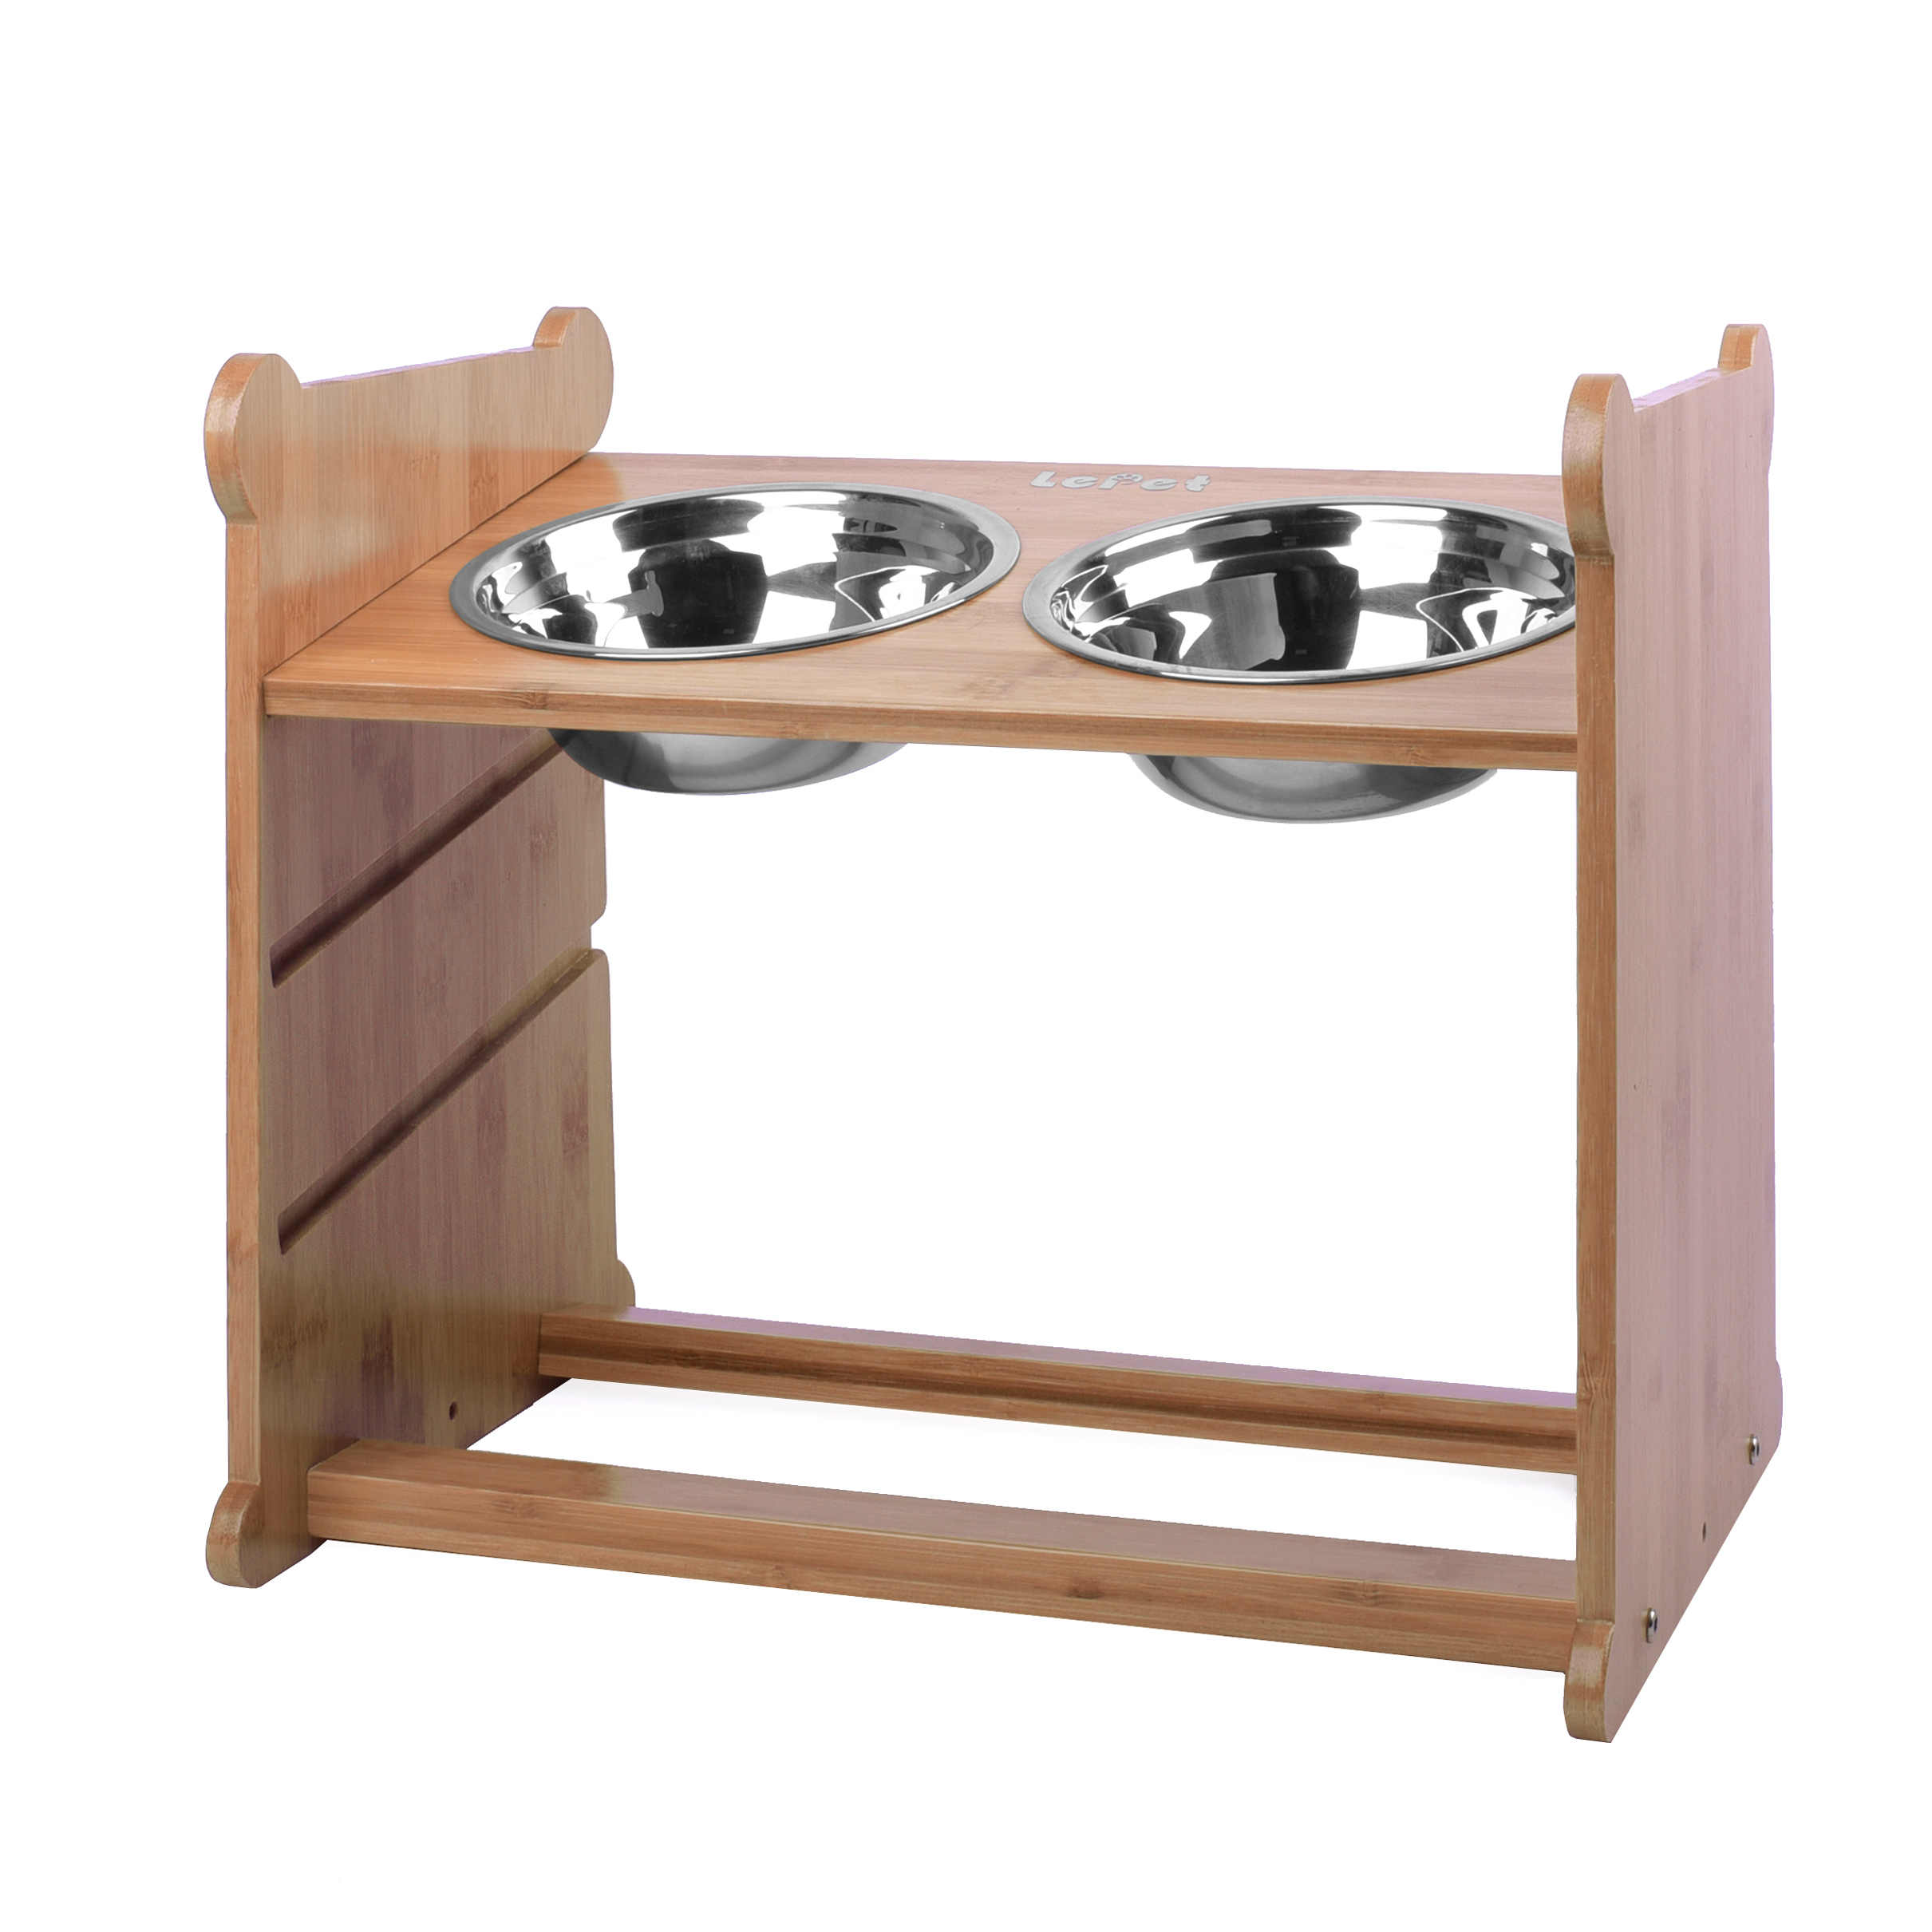 Elevated Dog Bowls Elevated Pet Feeder with 2 Stainless Steel Bowls